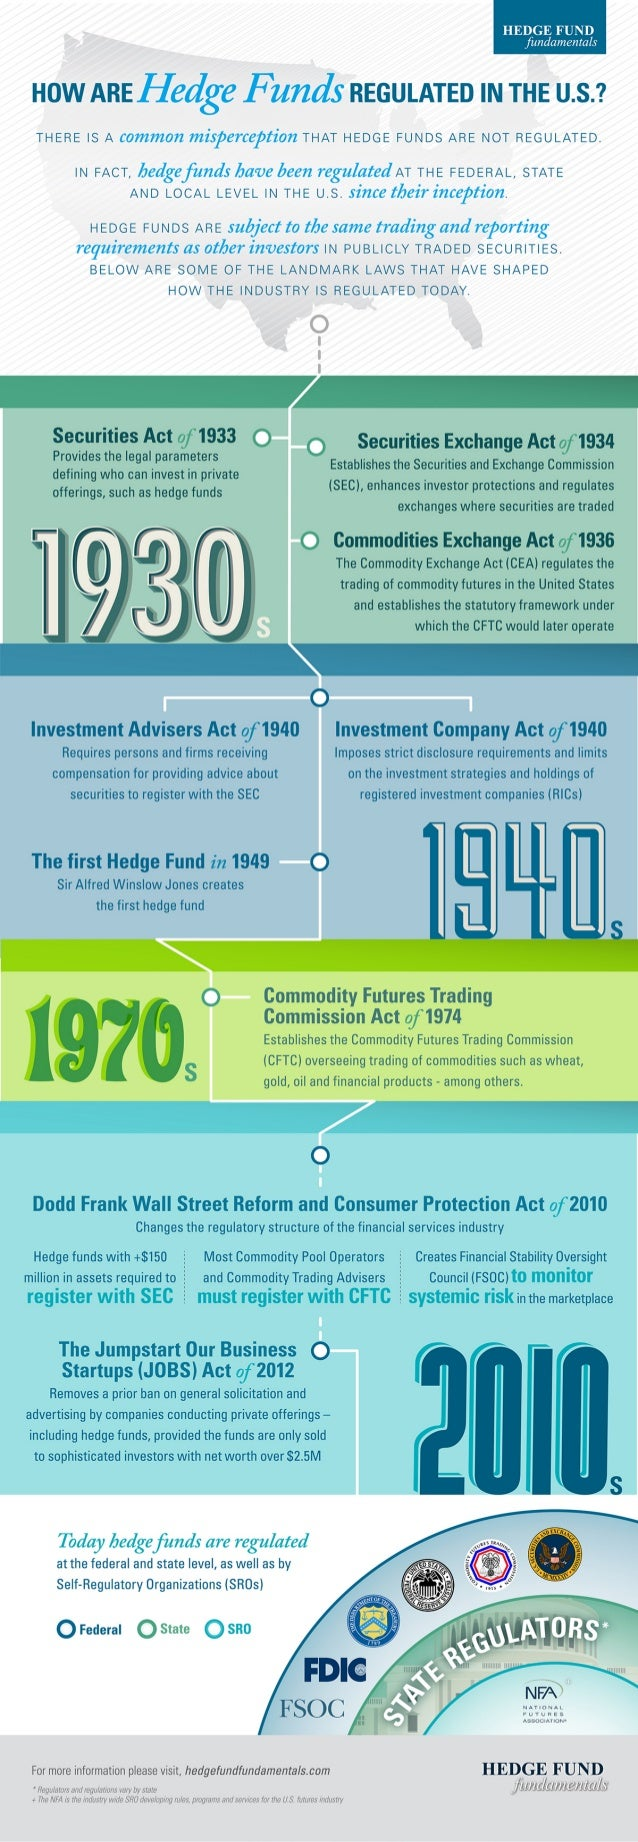 How Are Hedge Funds Regulated in the U.S.? Infographic